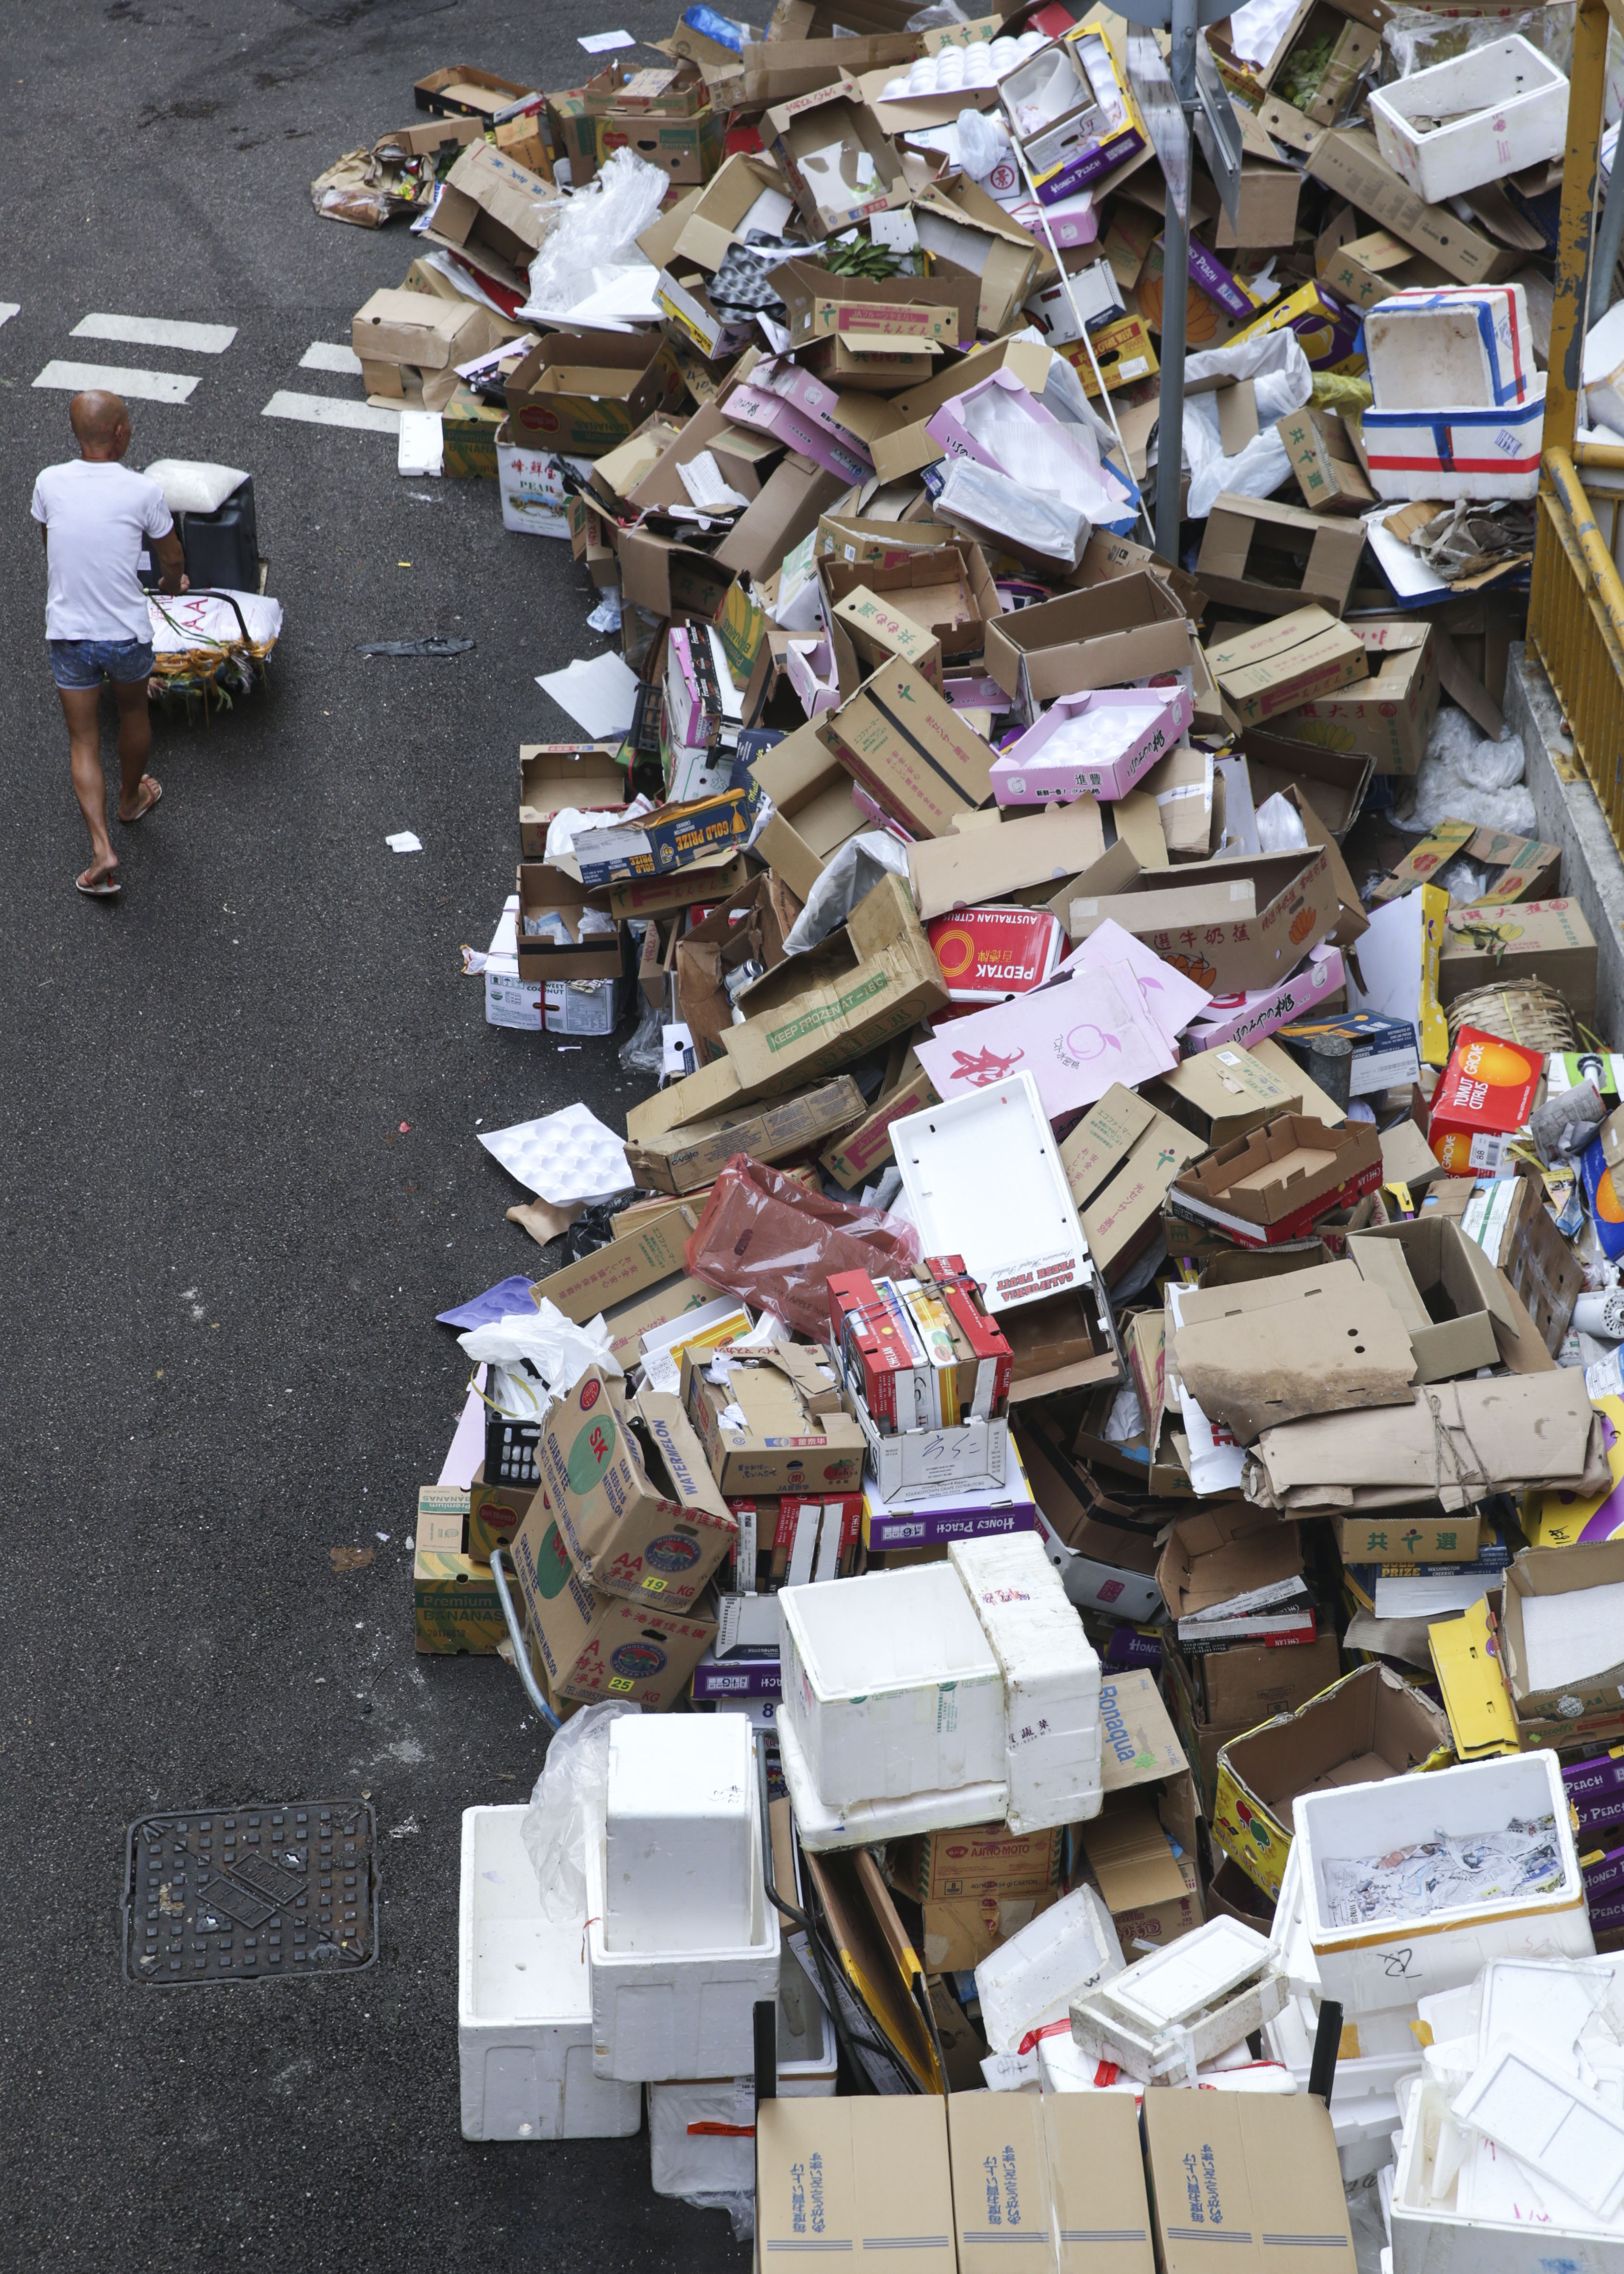 Hong Kongs Shameful Recycling Efforts The Numbers Dont Lie Board Lamps Beautiful Asian Paper Lamp Inspired Recycled Circuit Supposedly 44 Per Cent Of What We Recycle Is Yet Kong Has No Recyclers Photo Sam Tsang